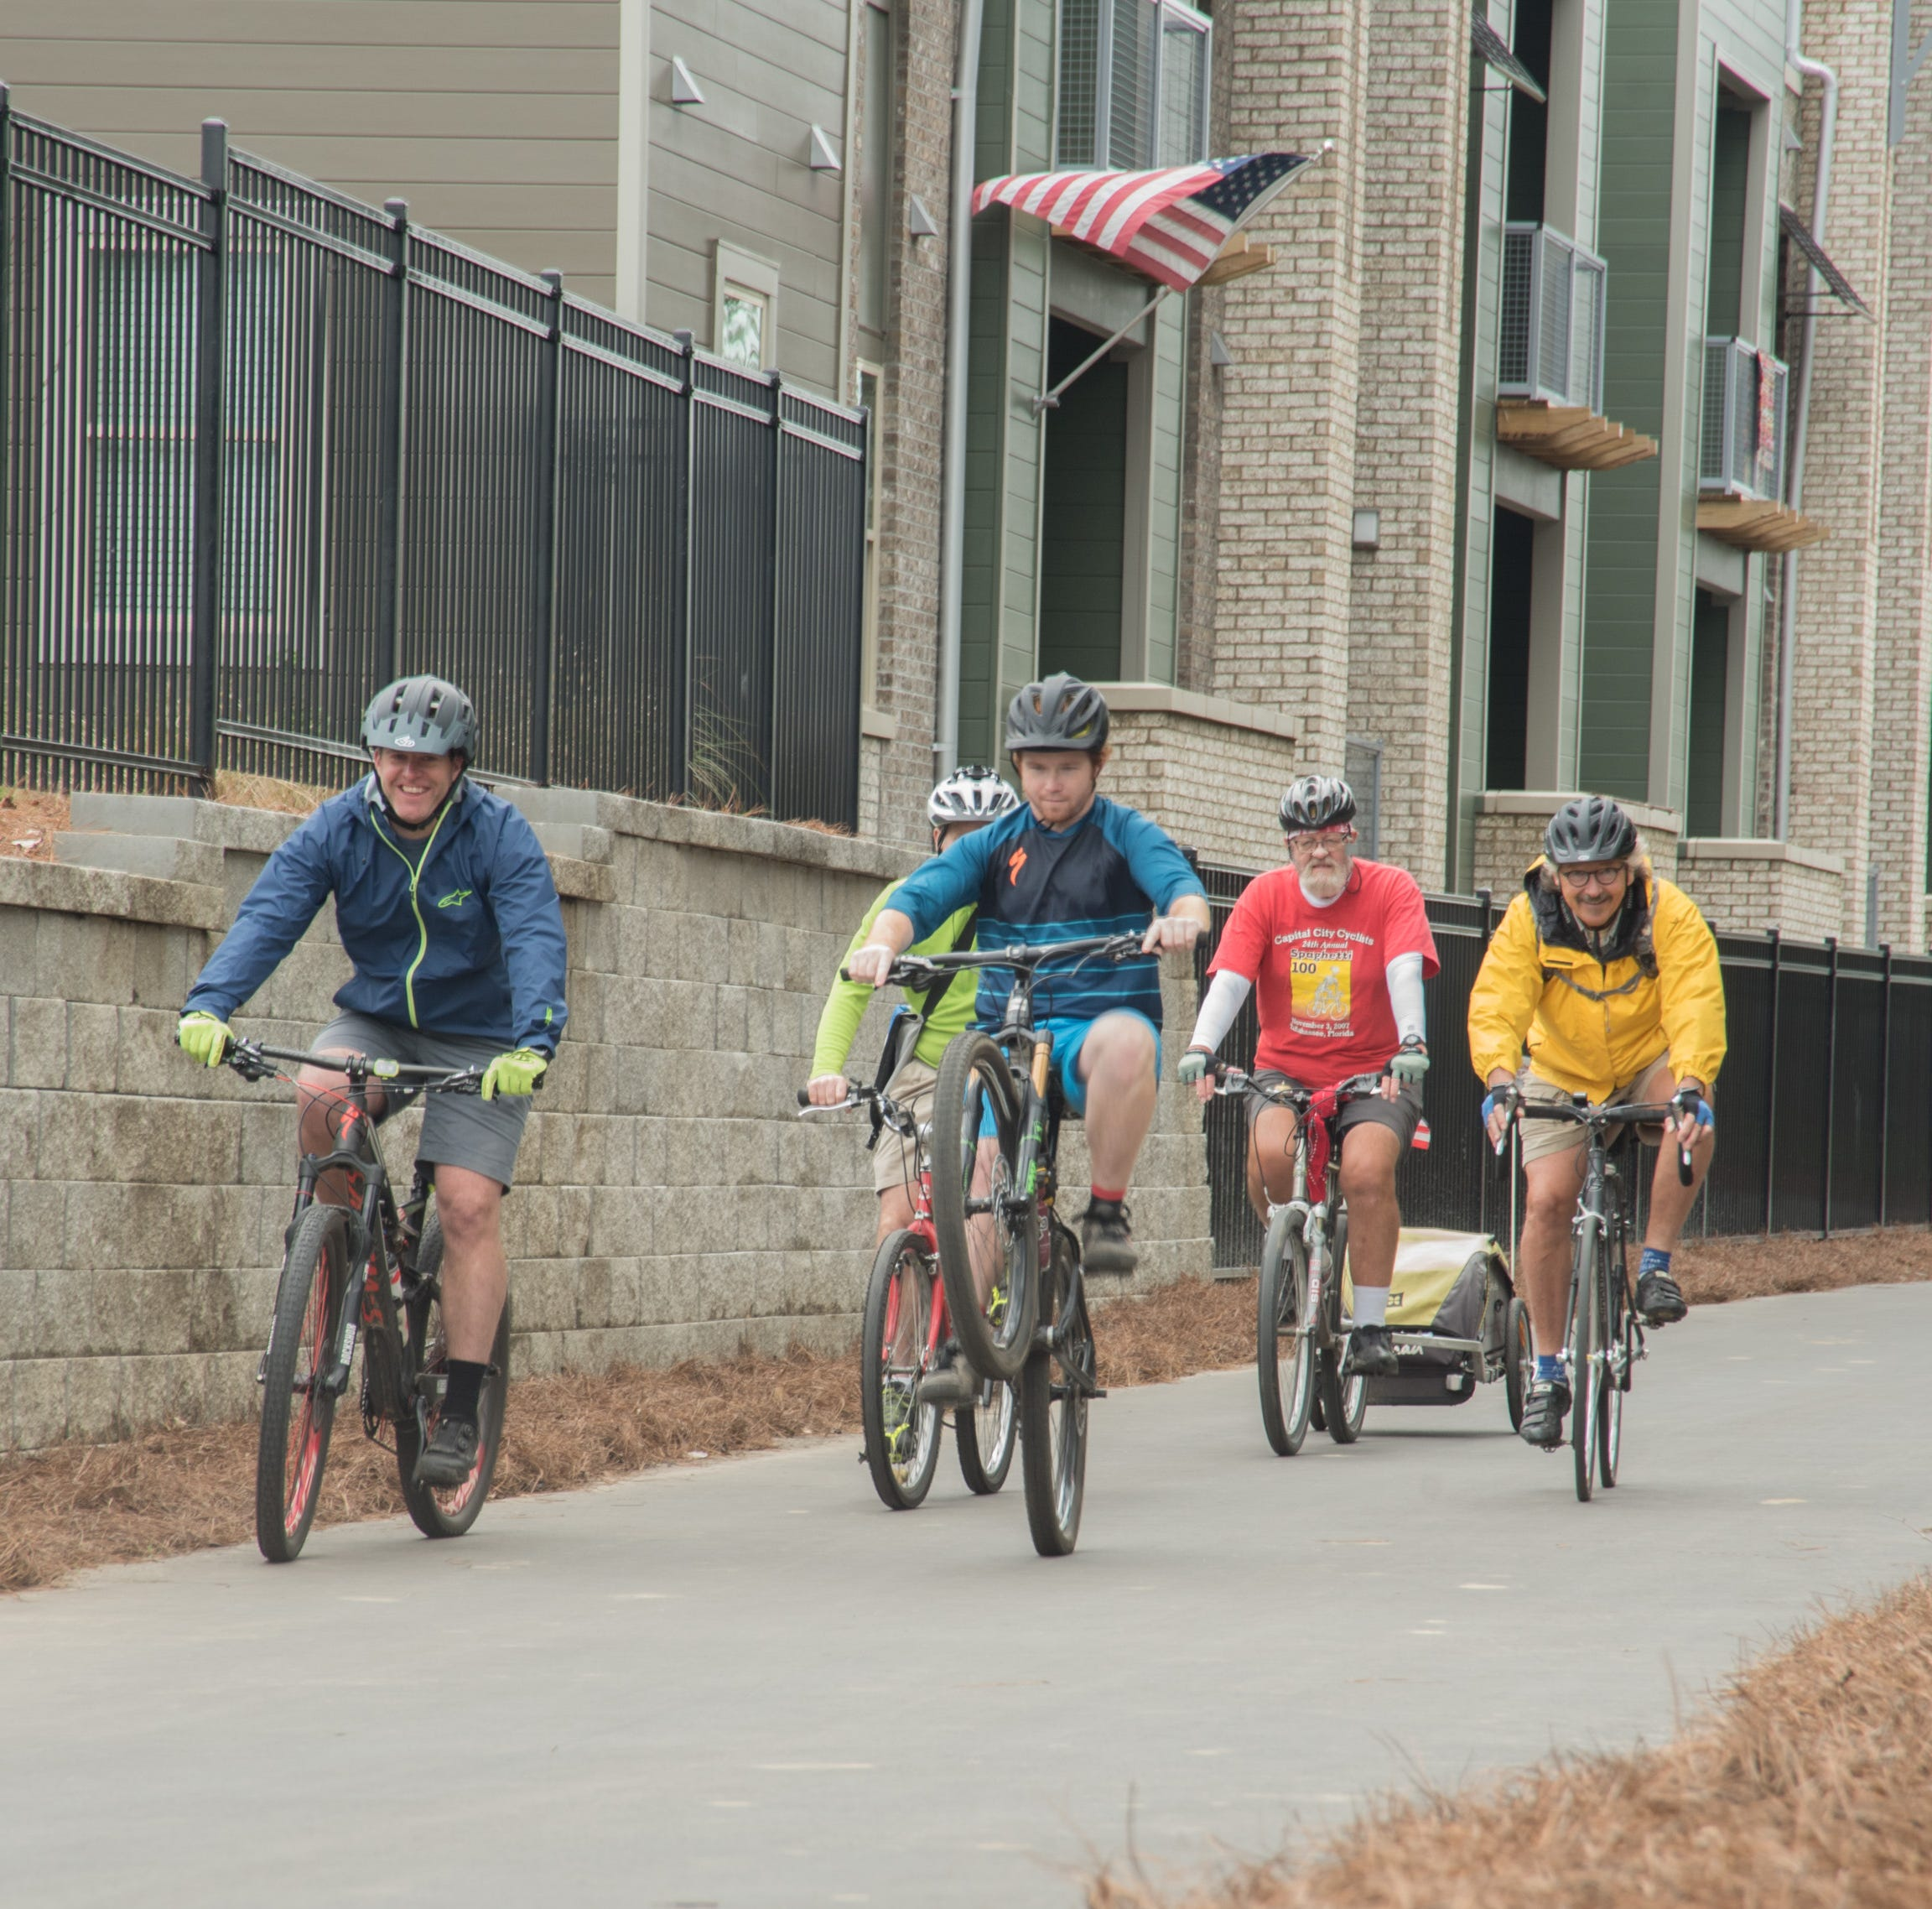 St. Marks Trail extension opens offering college students, residents safe biking option